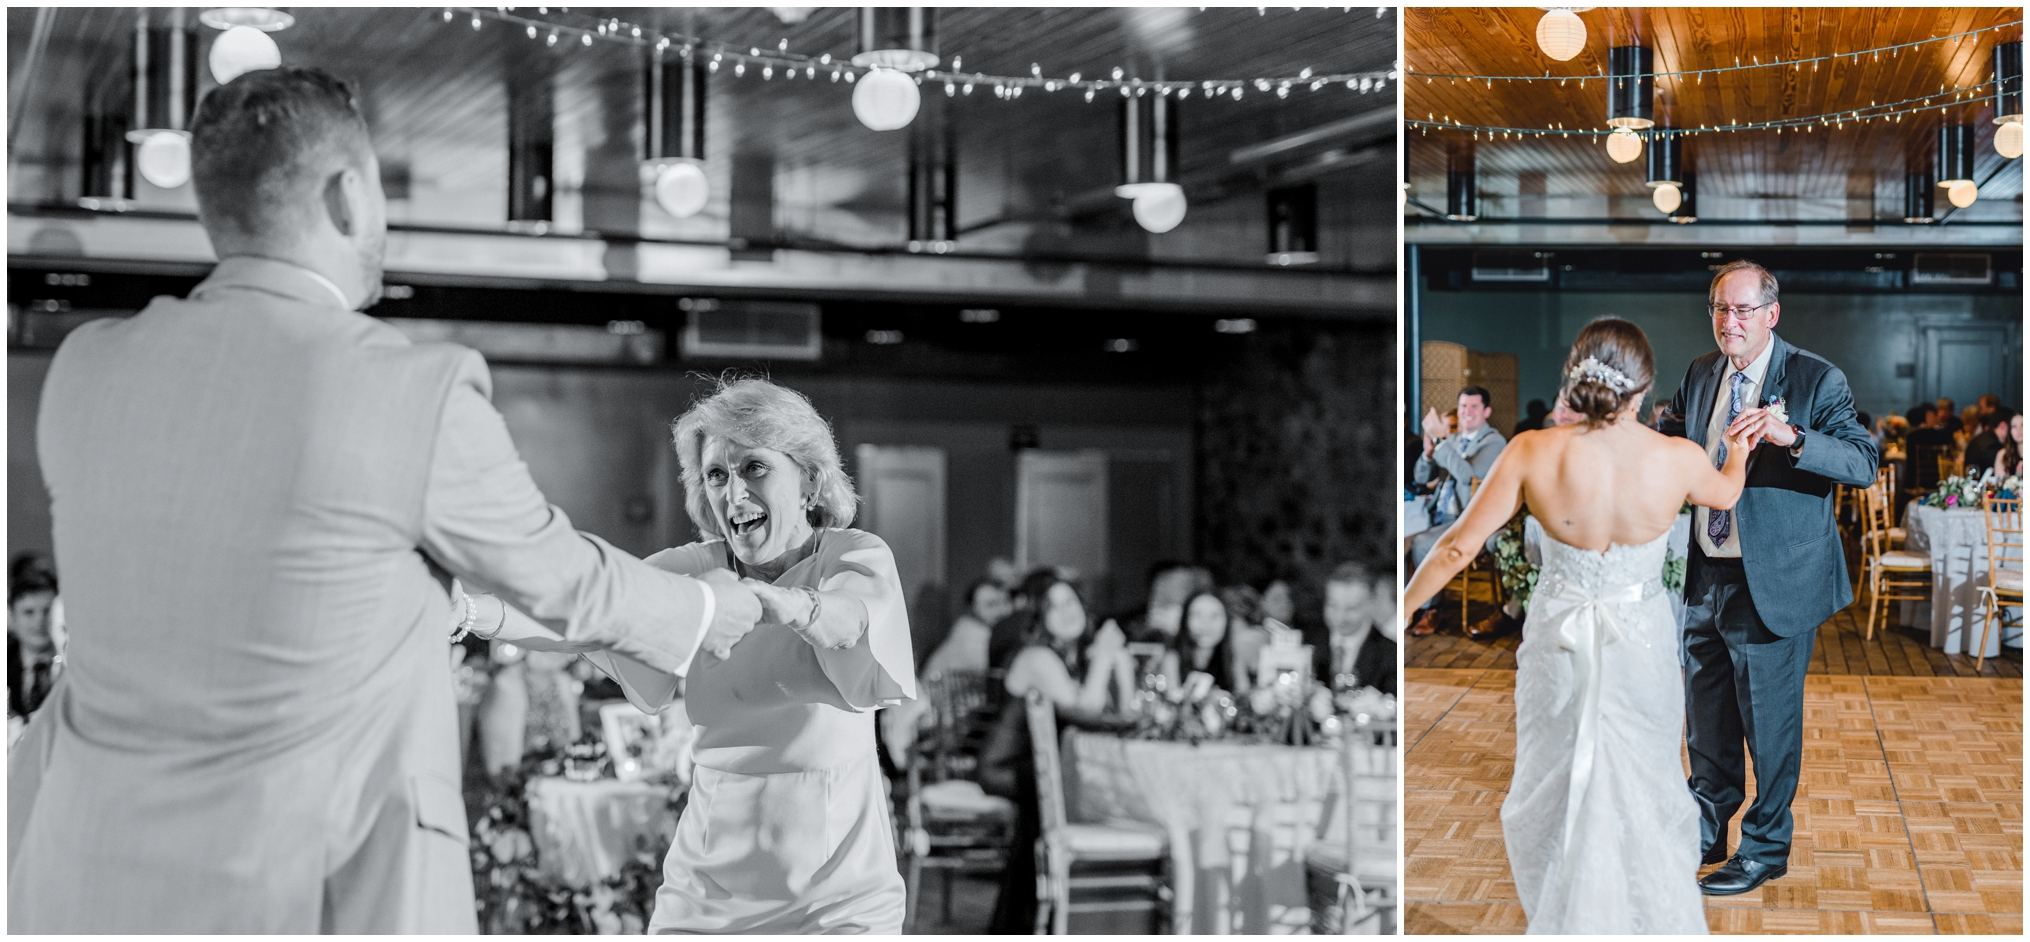 Krista Brackin Photography | April Wedding at The Carriage House at Rockwood Park_0114.jpg